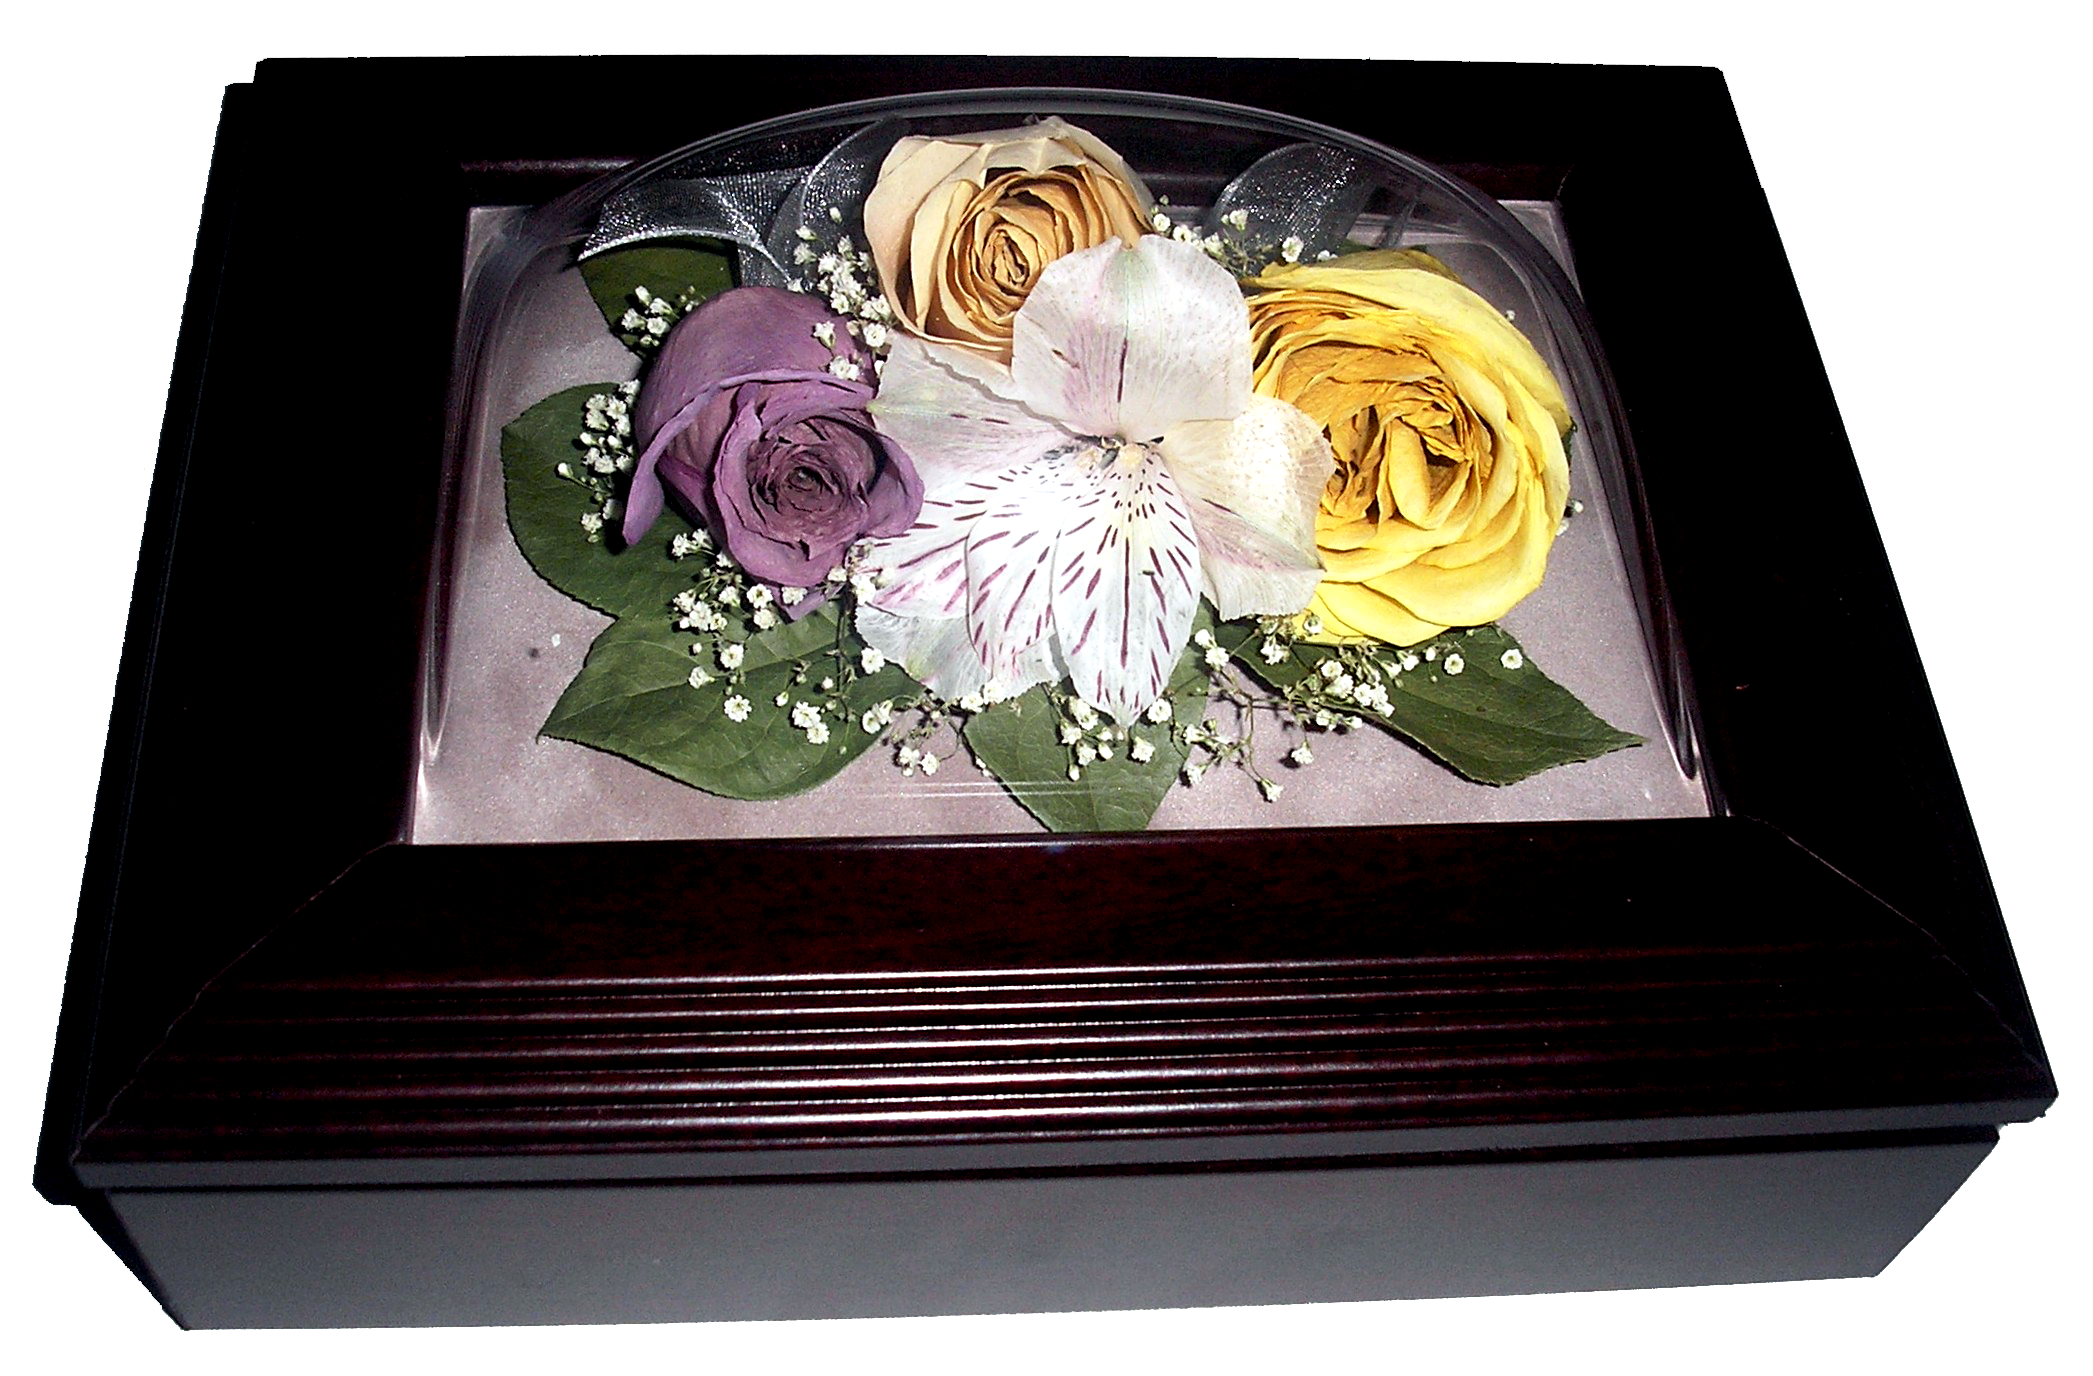 Funeral Flower Preservation Is Not About Remembering The